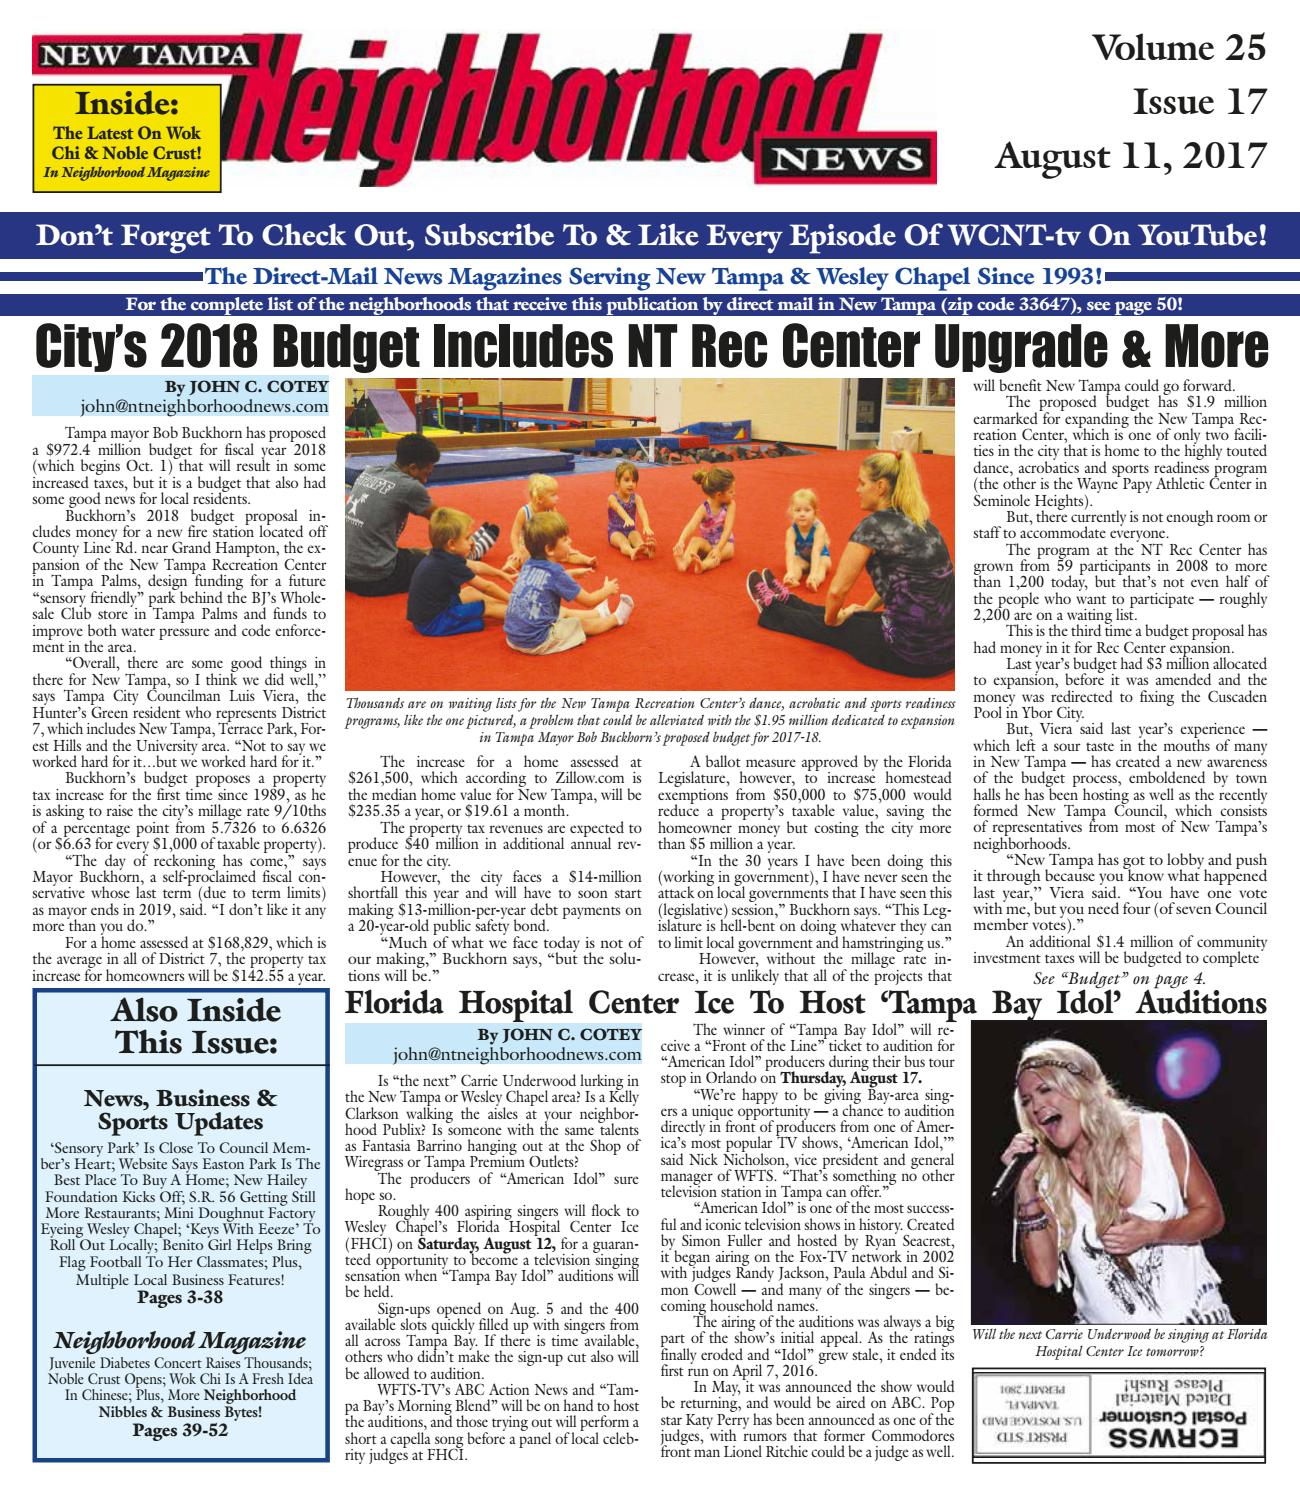 New Tampa Neighborhood News, Volume 25, Issue 17, Aug  11